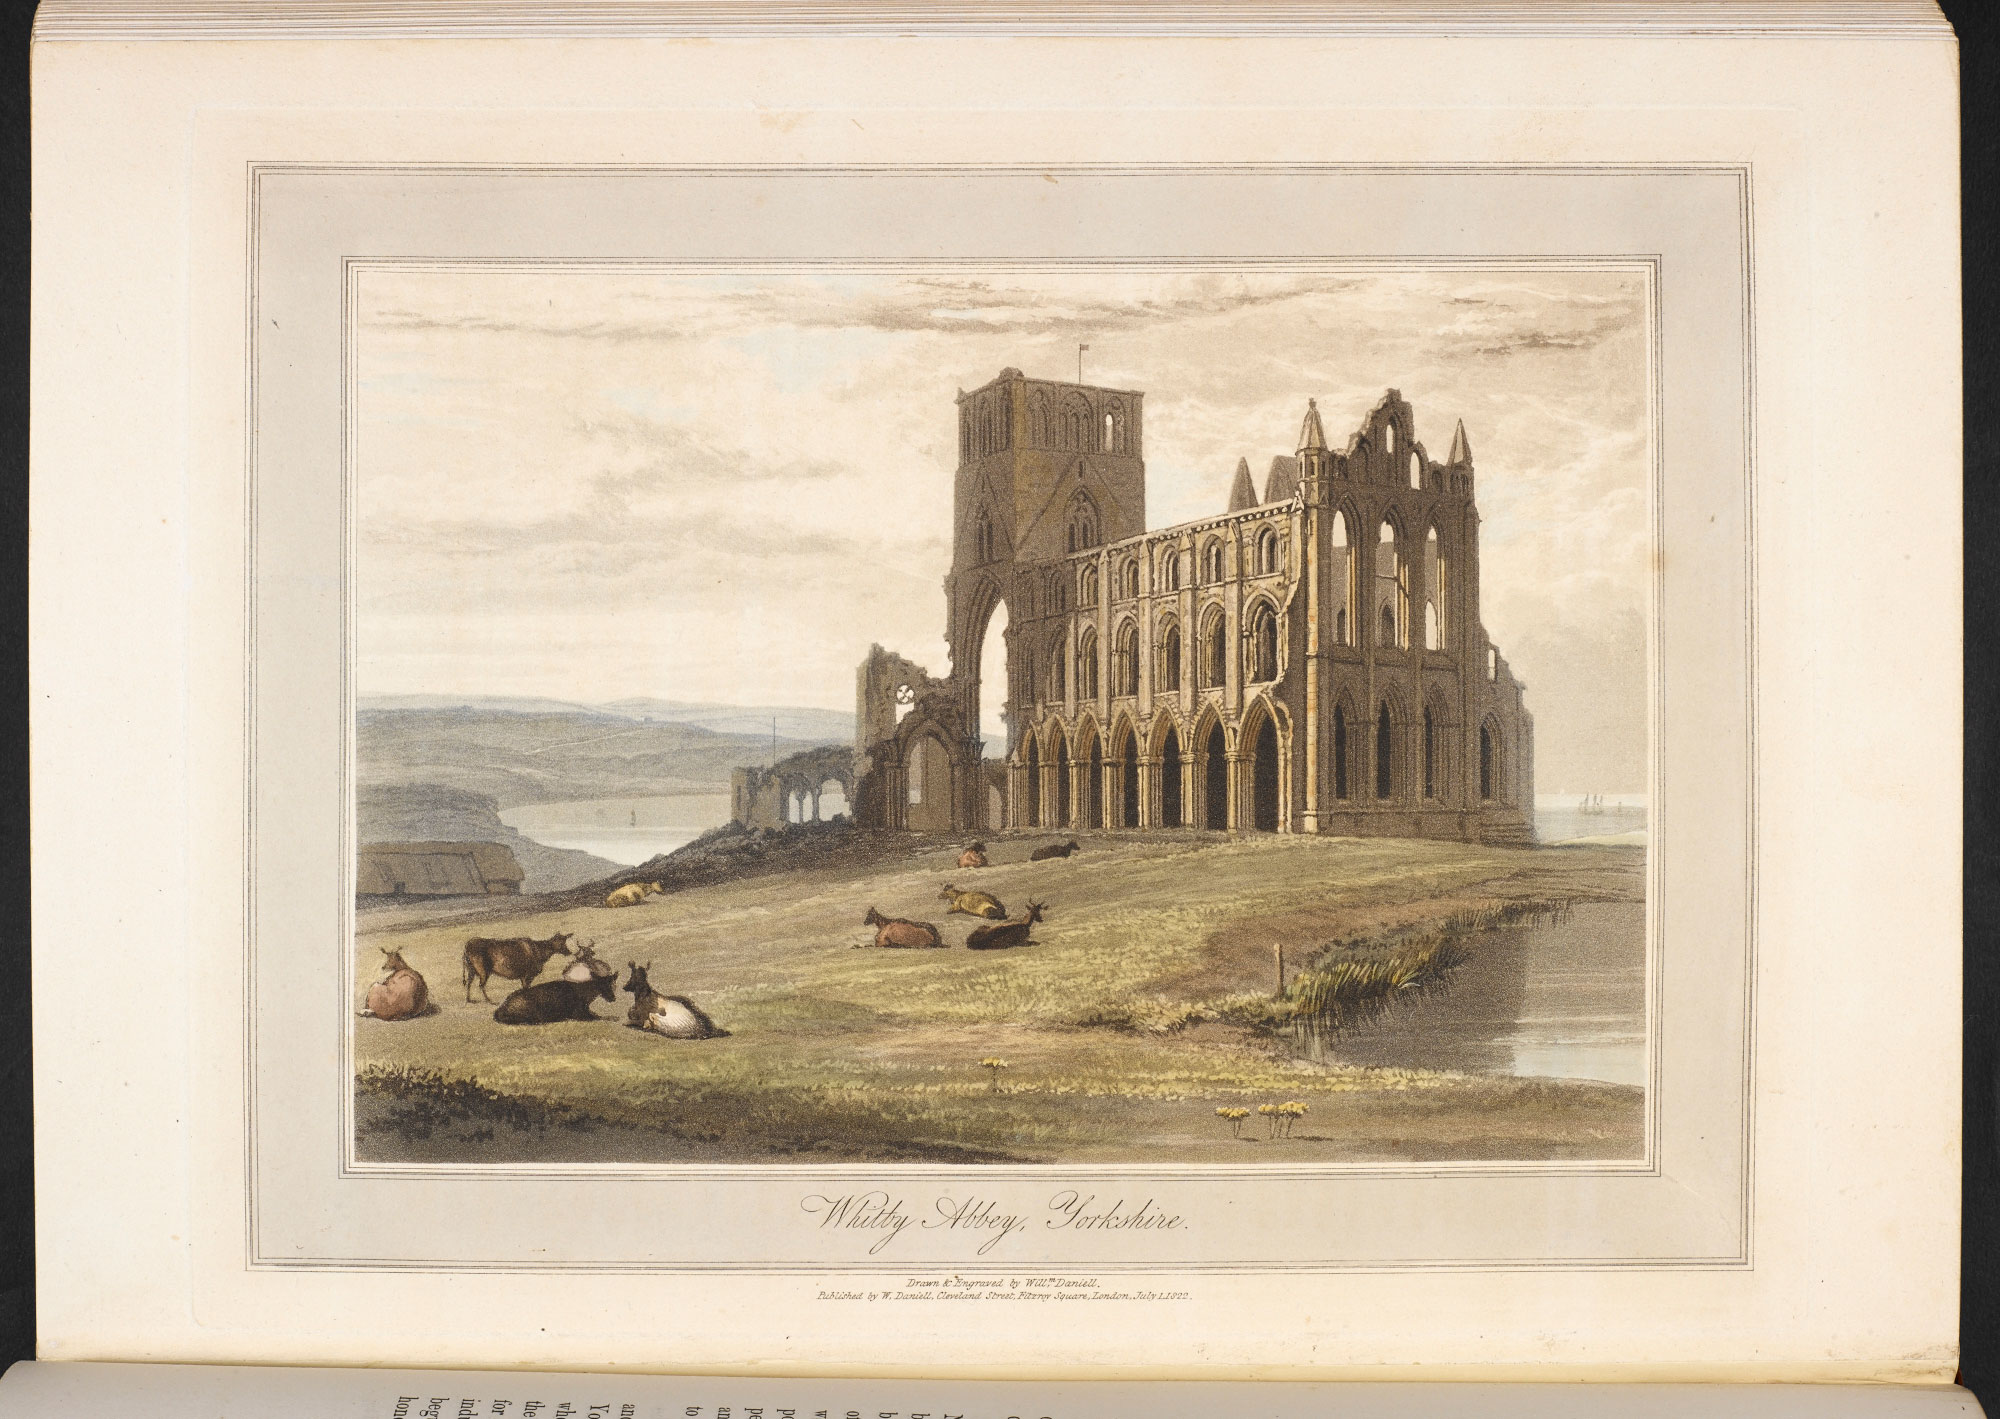 Whitby, a setting used in Dracula